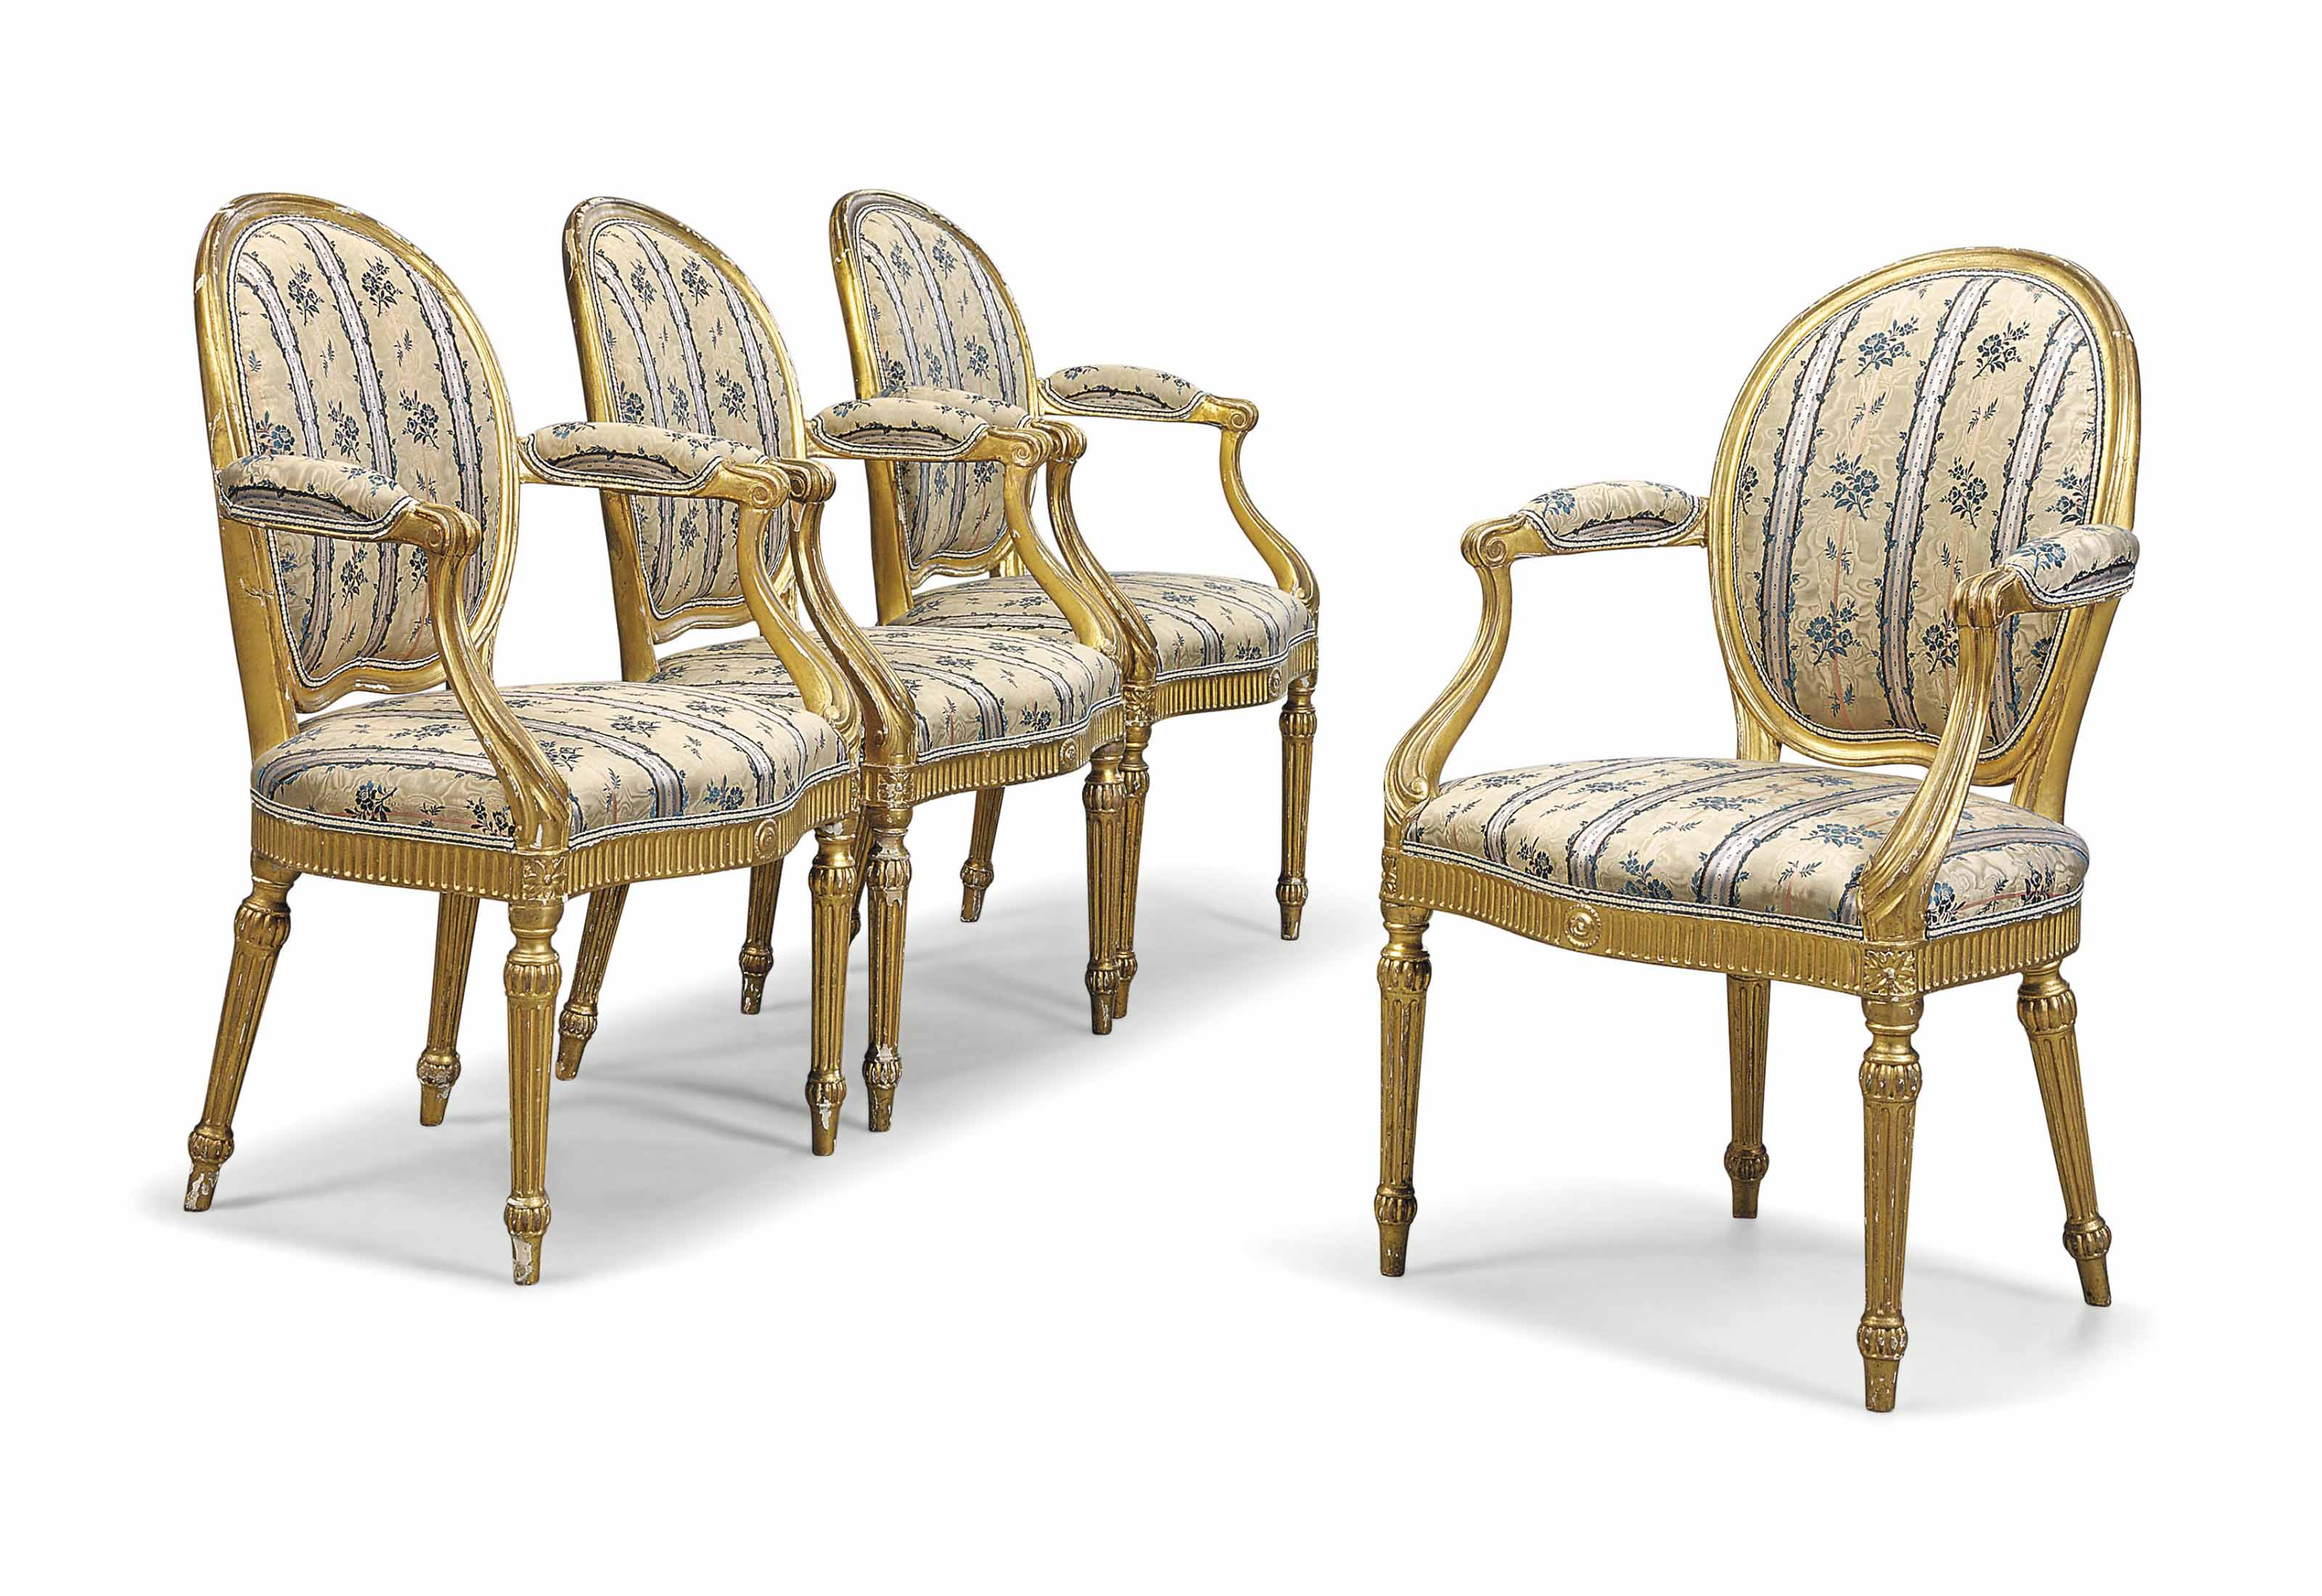 A SET OF FOUR GEORGE III GILTWOOD OPEN ARMCHAIRS